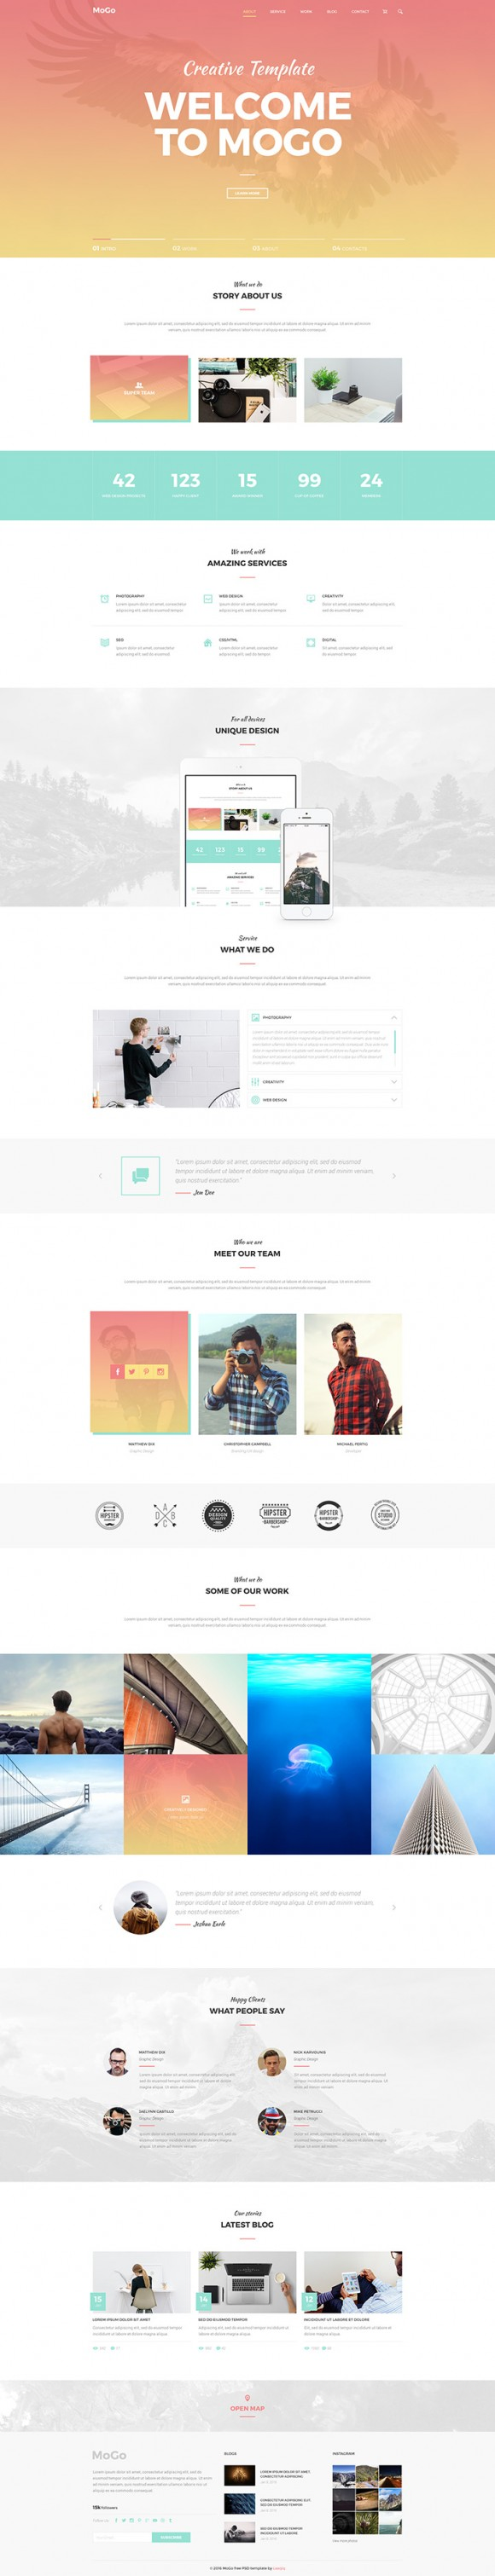 MoGo: Free one page PSD template - Freebiesbug